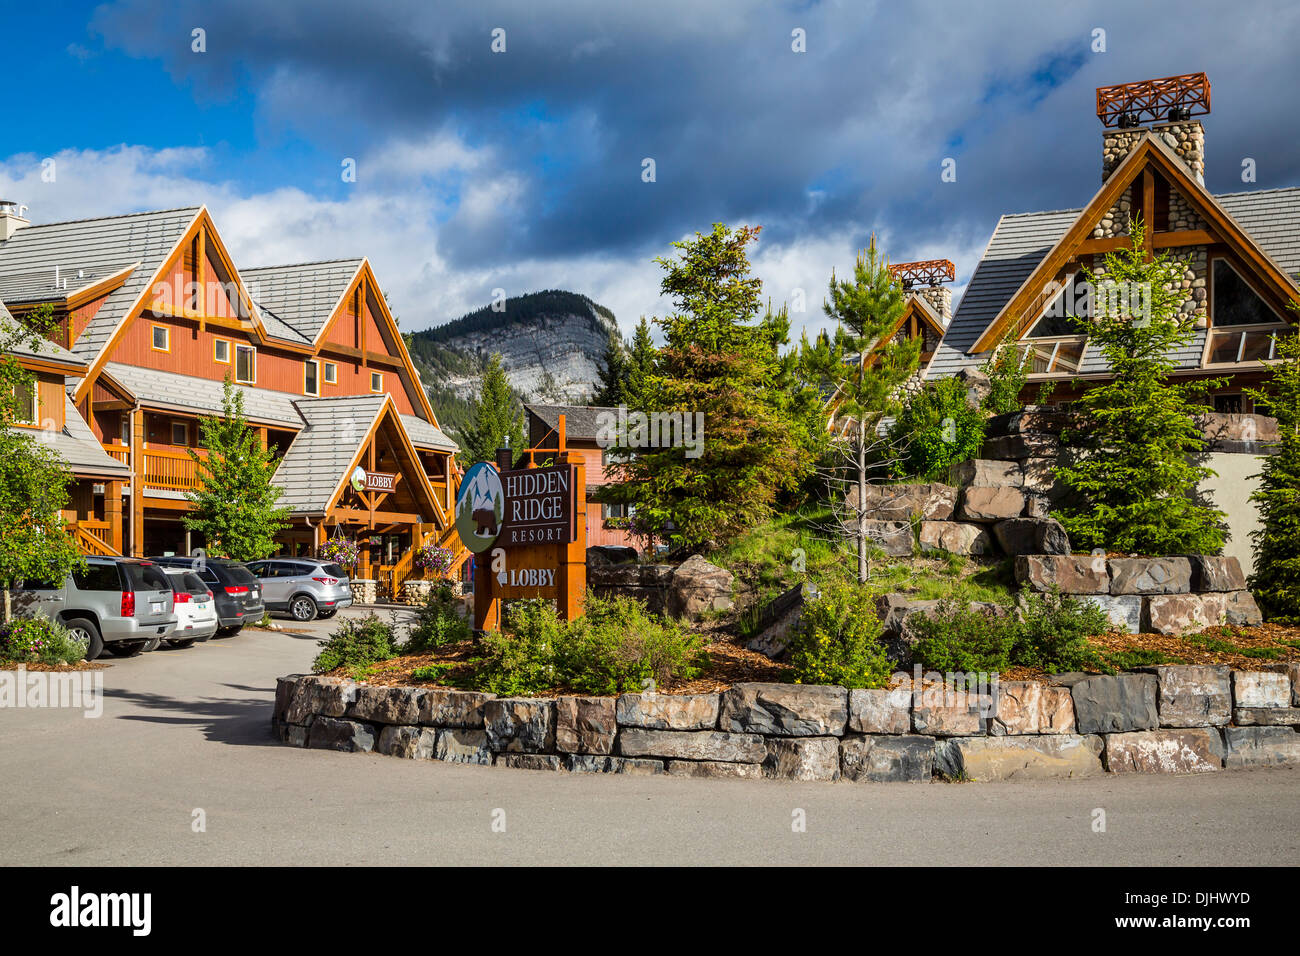 the hidden ridge resort on tunnel mountain in banff, banff national